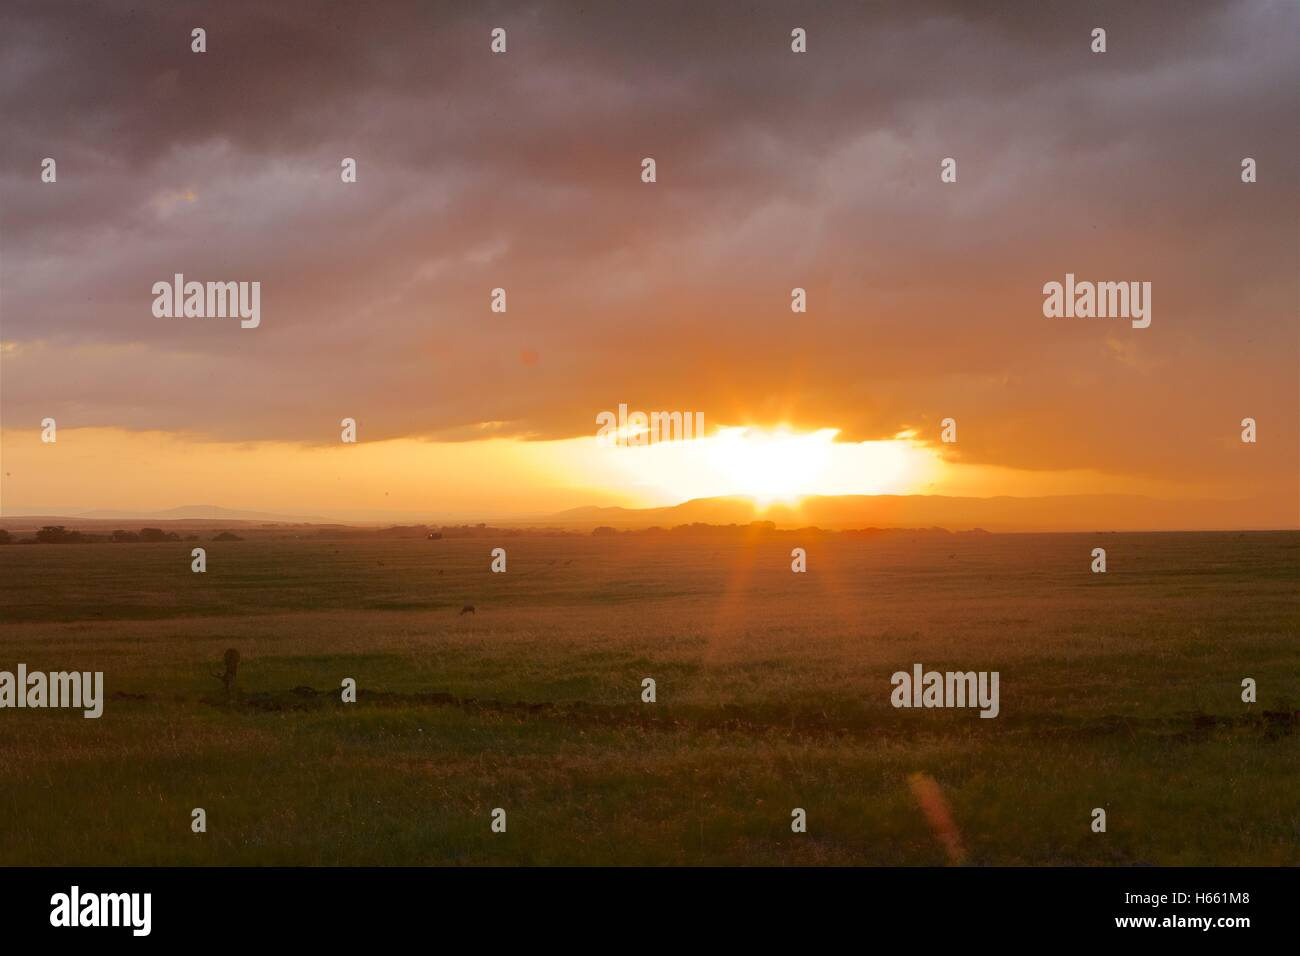 Sunrise on safari in Masai Mara, Kenya. - Stock Image